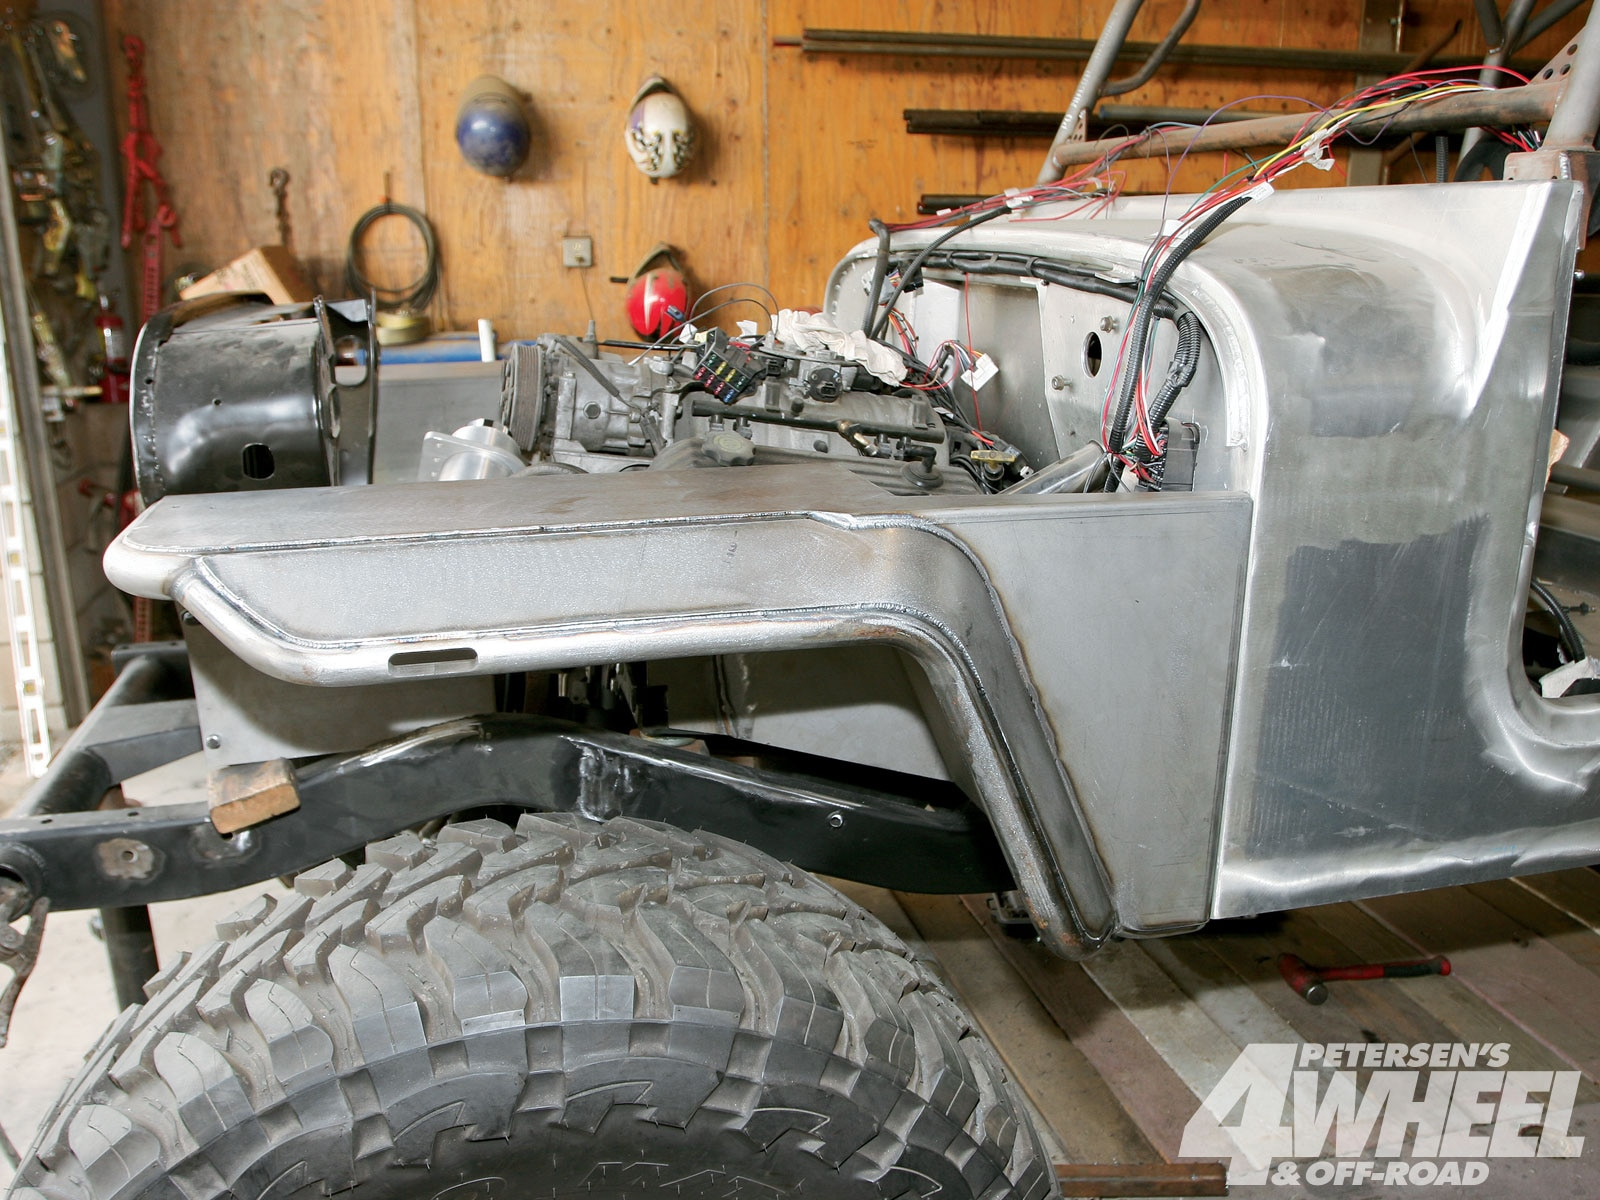 The Rock Fenders are 100 percent made in the USA and are available for Jeep CJ, TJ, LJ, and JK (JK fenders aren't available with inner fenderwells) and with or without flares.